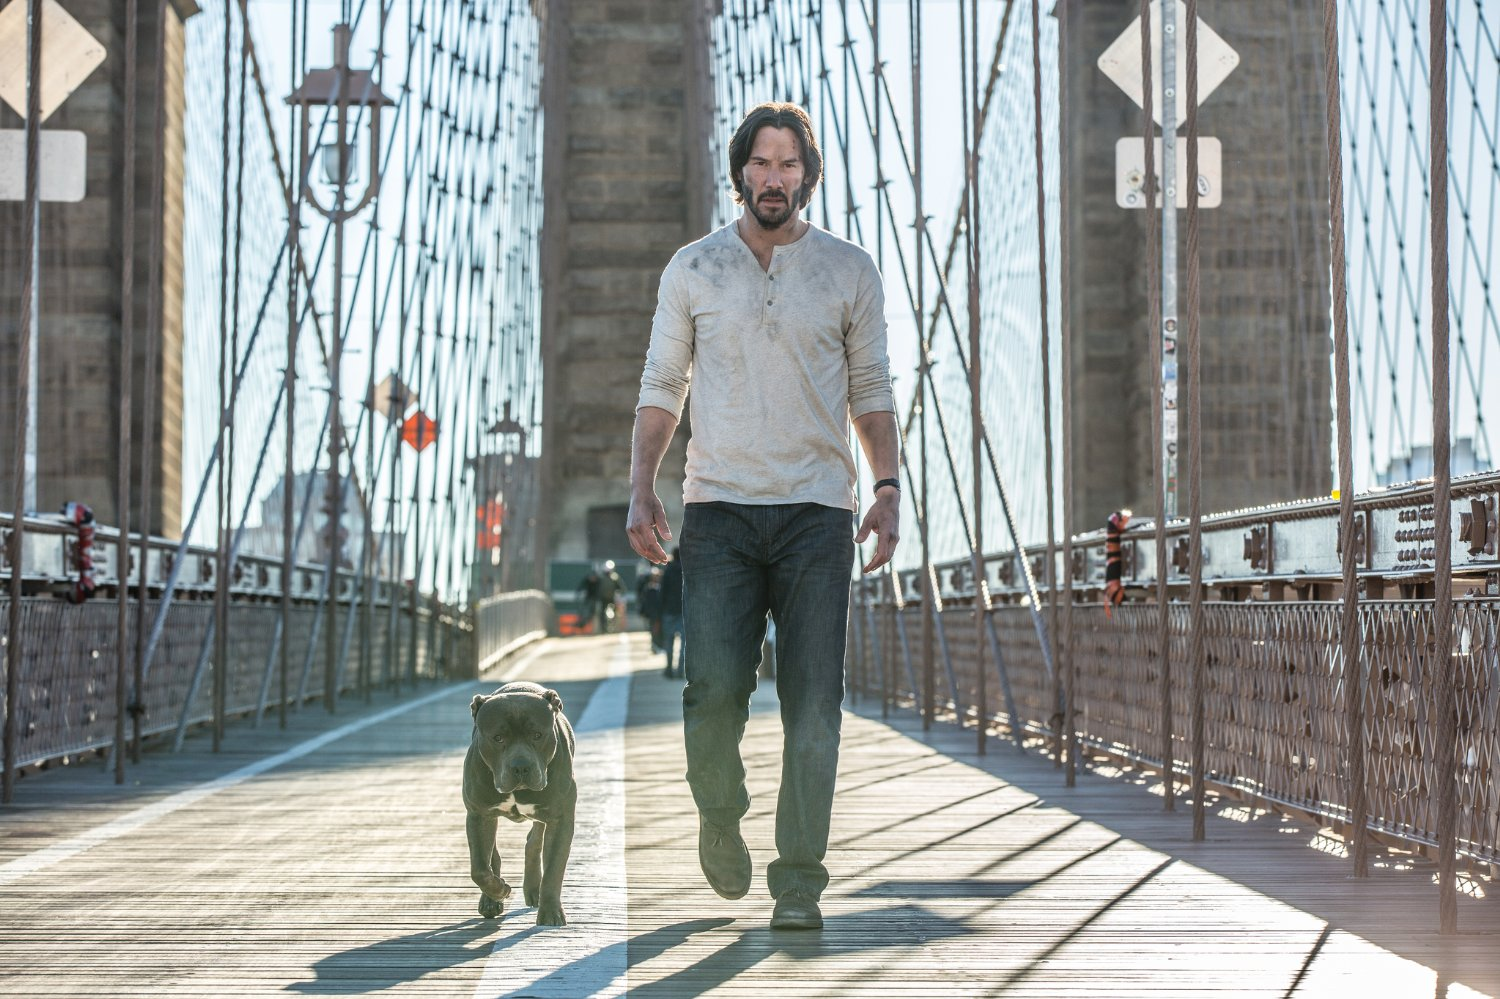 John Wick with pitbull walking Brooklyn bridge